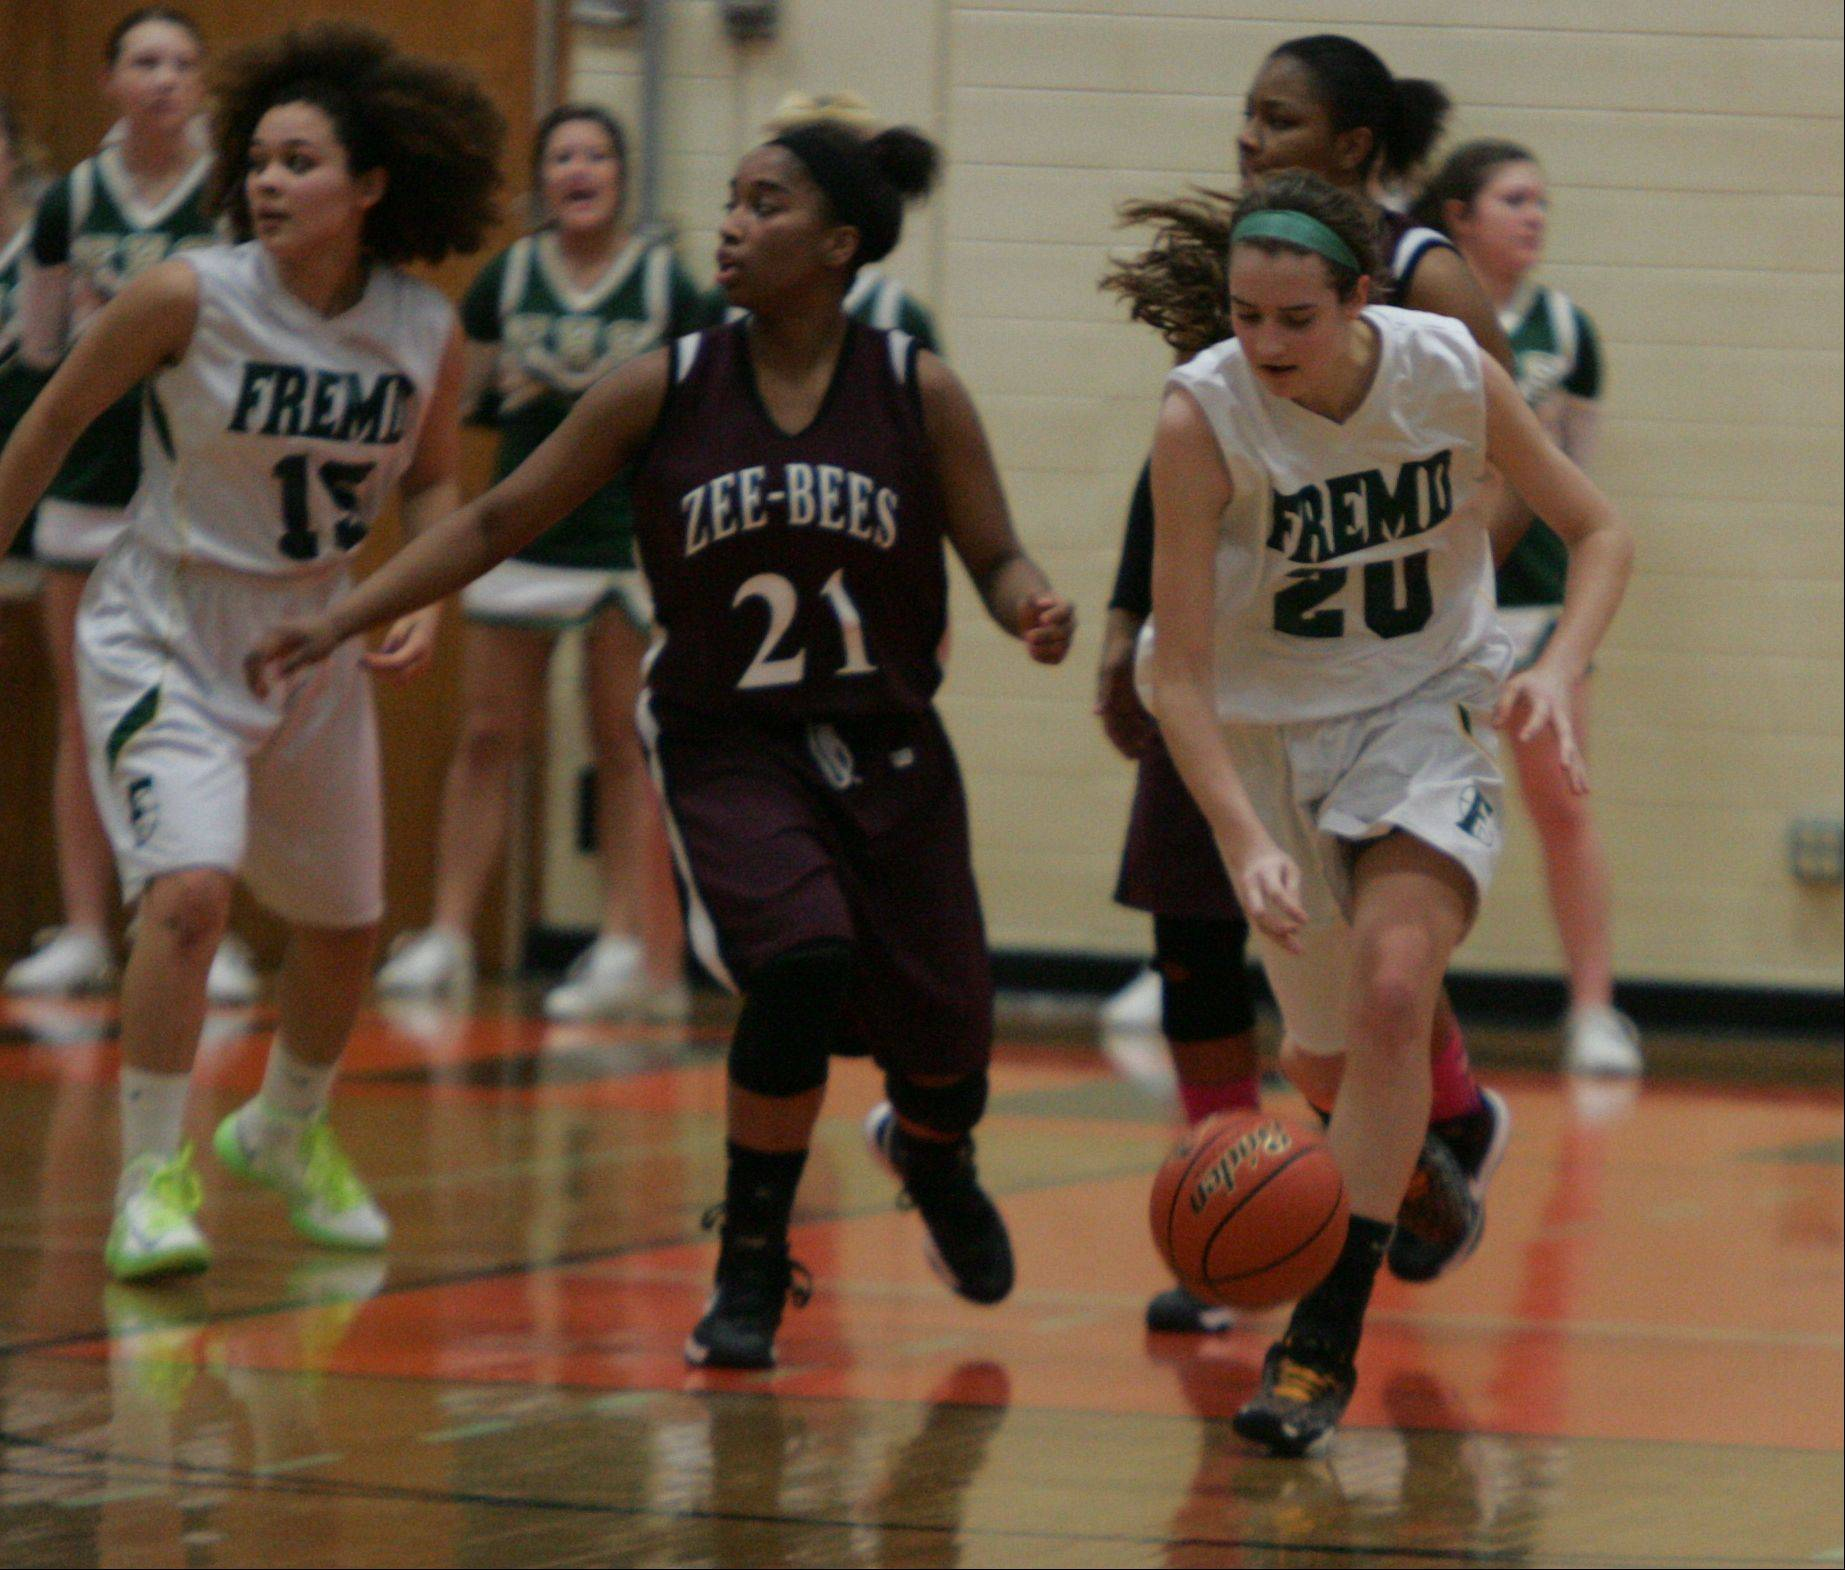 The girls basketball game between Fremd and Zion-Benton in the Class 4A sectional semifinals at Libertyville High School Monday.